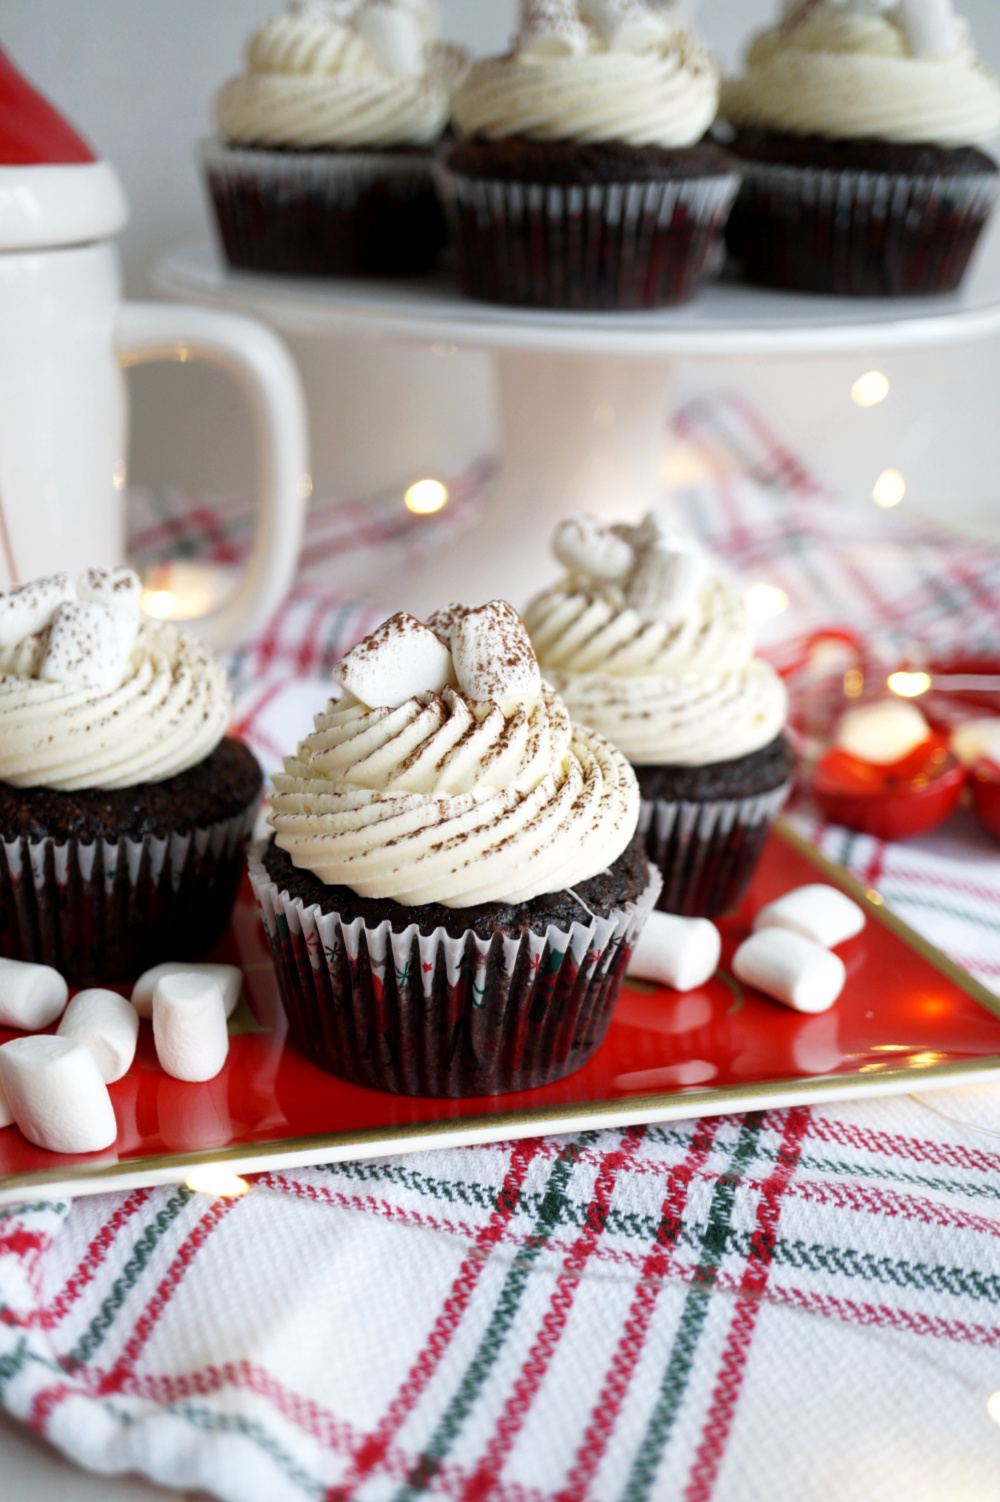 chocolate cupcakes with marshmallows on red tray